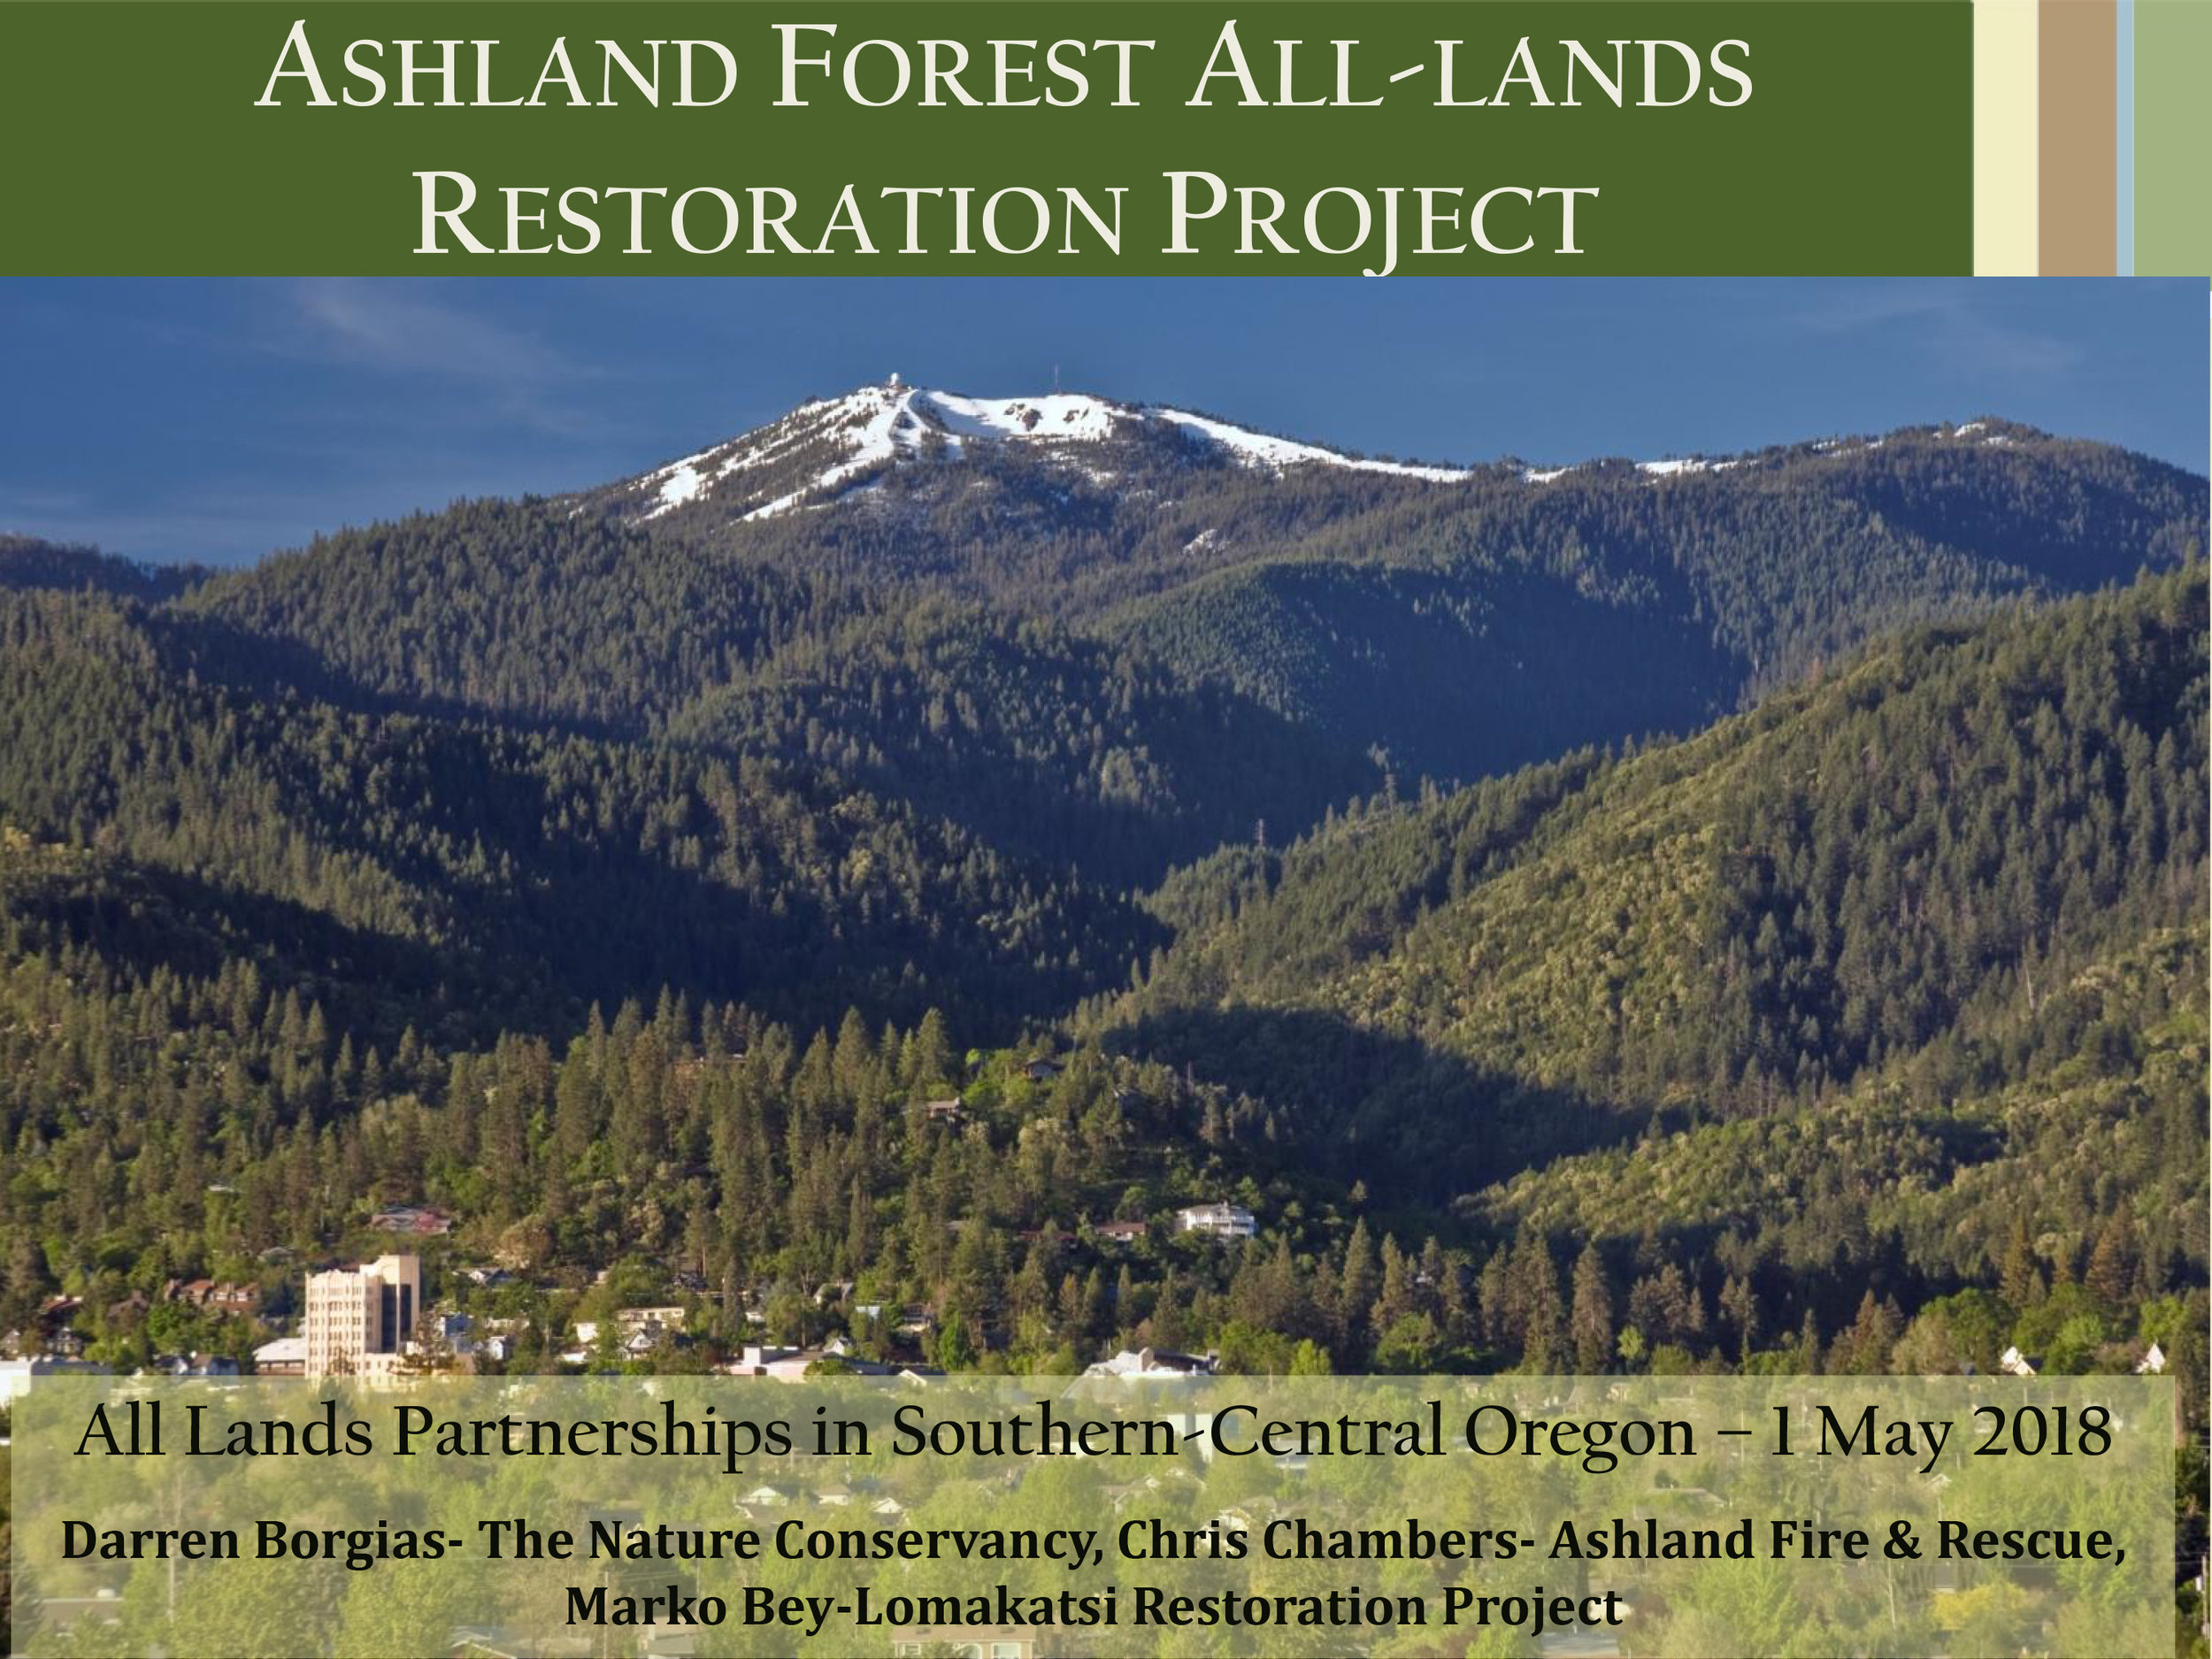 Ashland Forest All-Lands Restoration Project-1.jpg